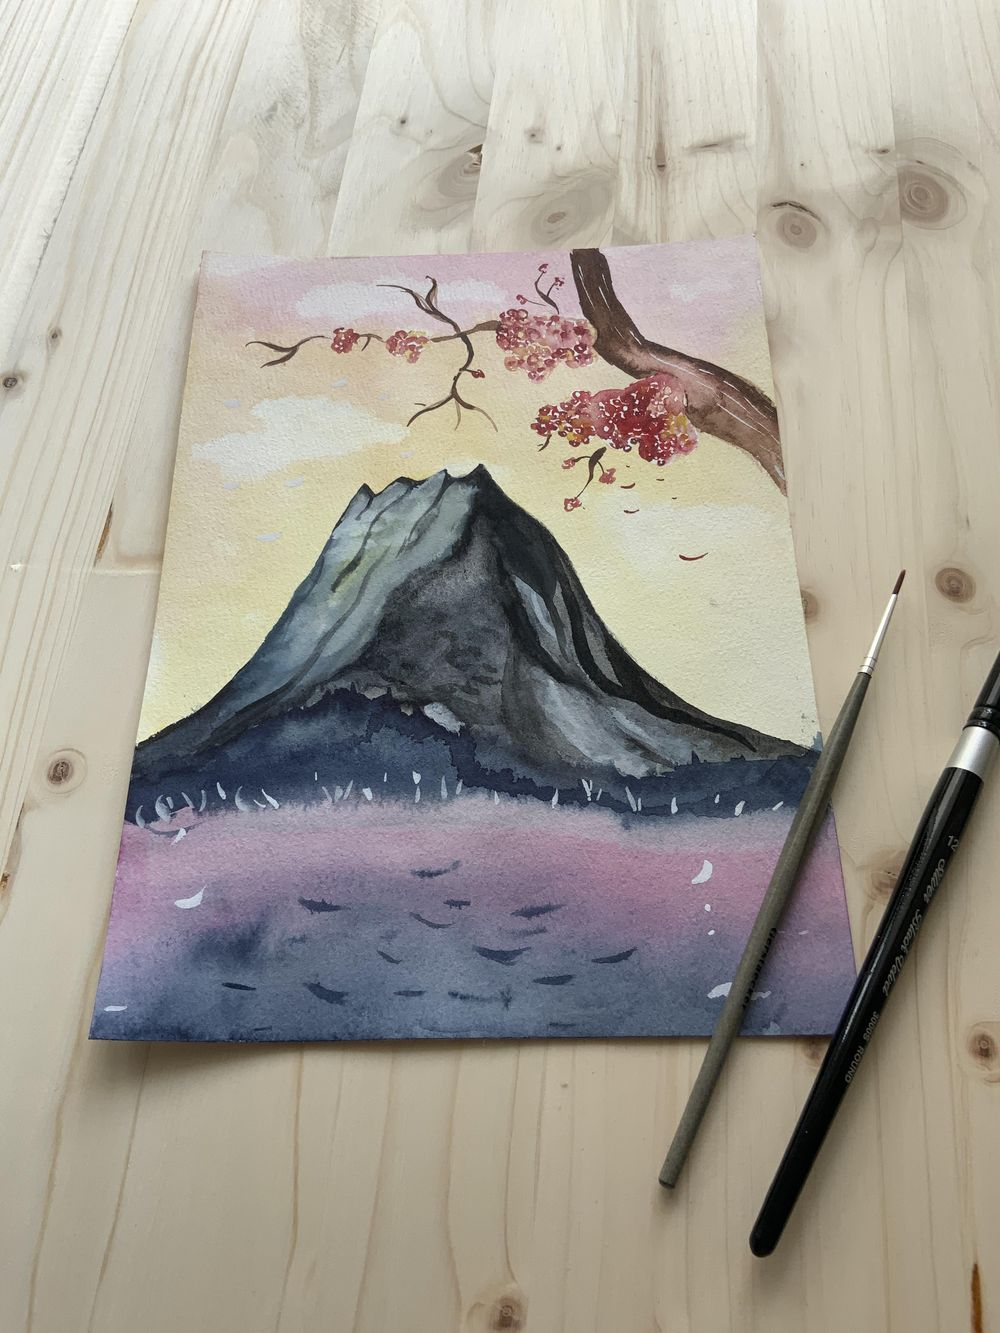 Fun with Watercolors - image 5 - student project